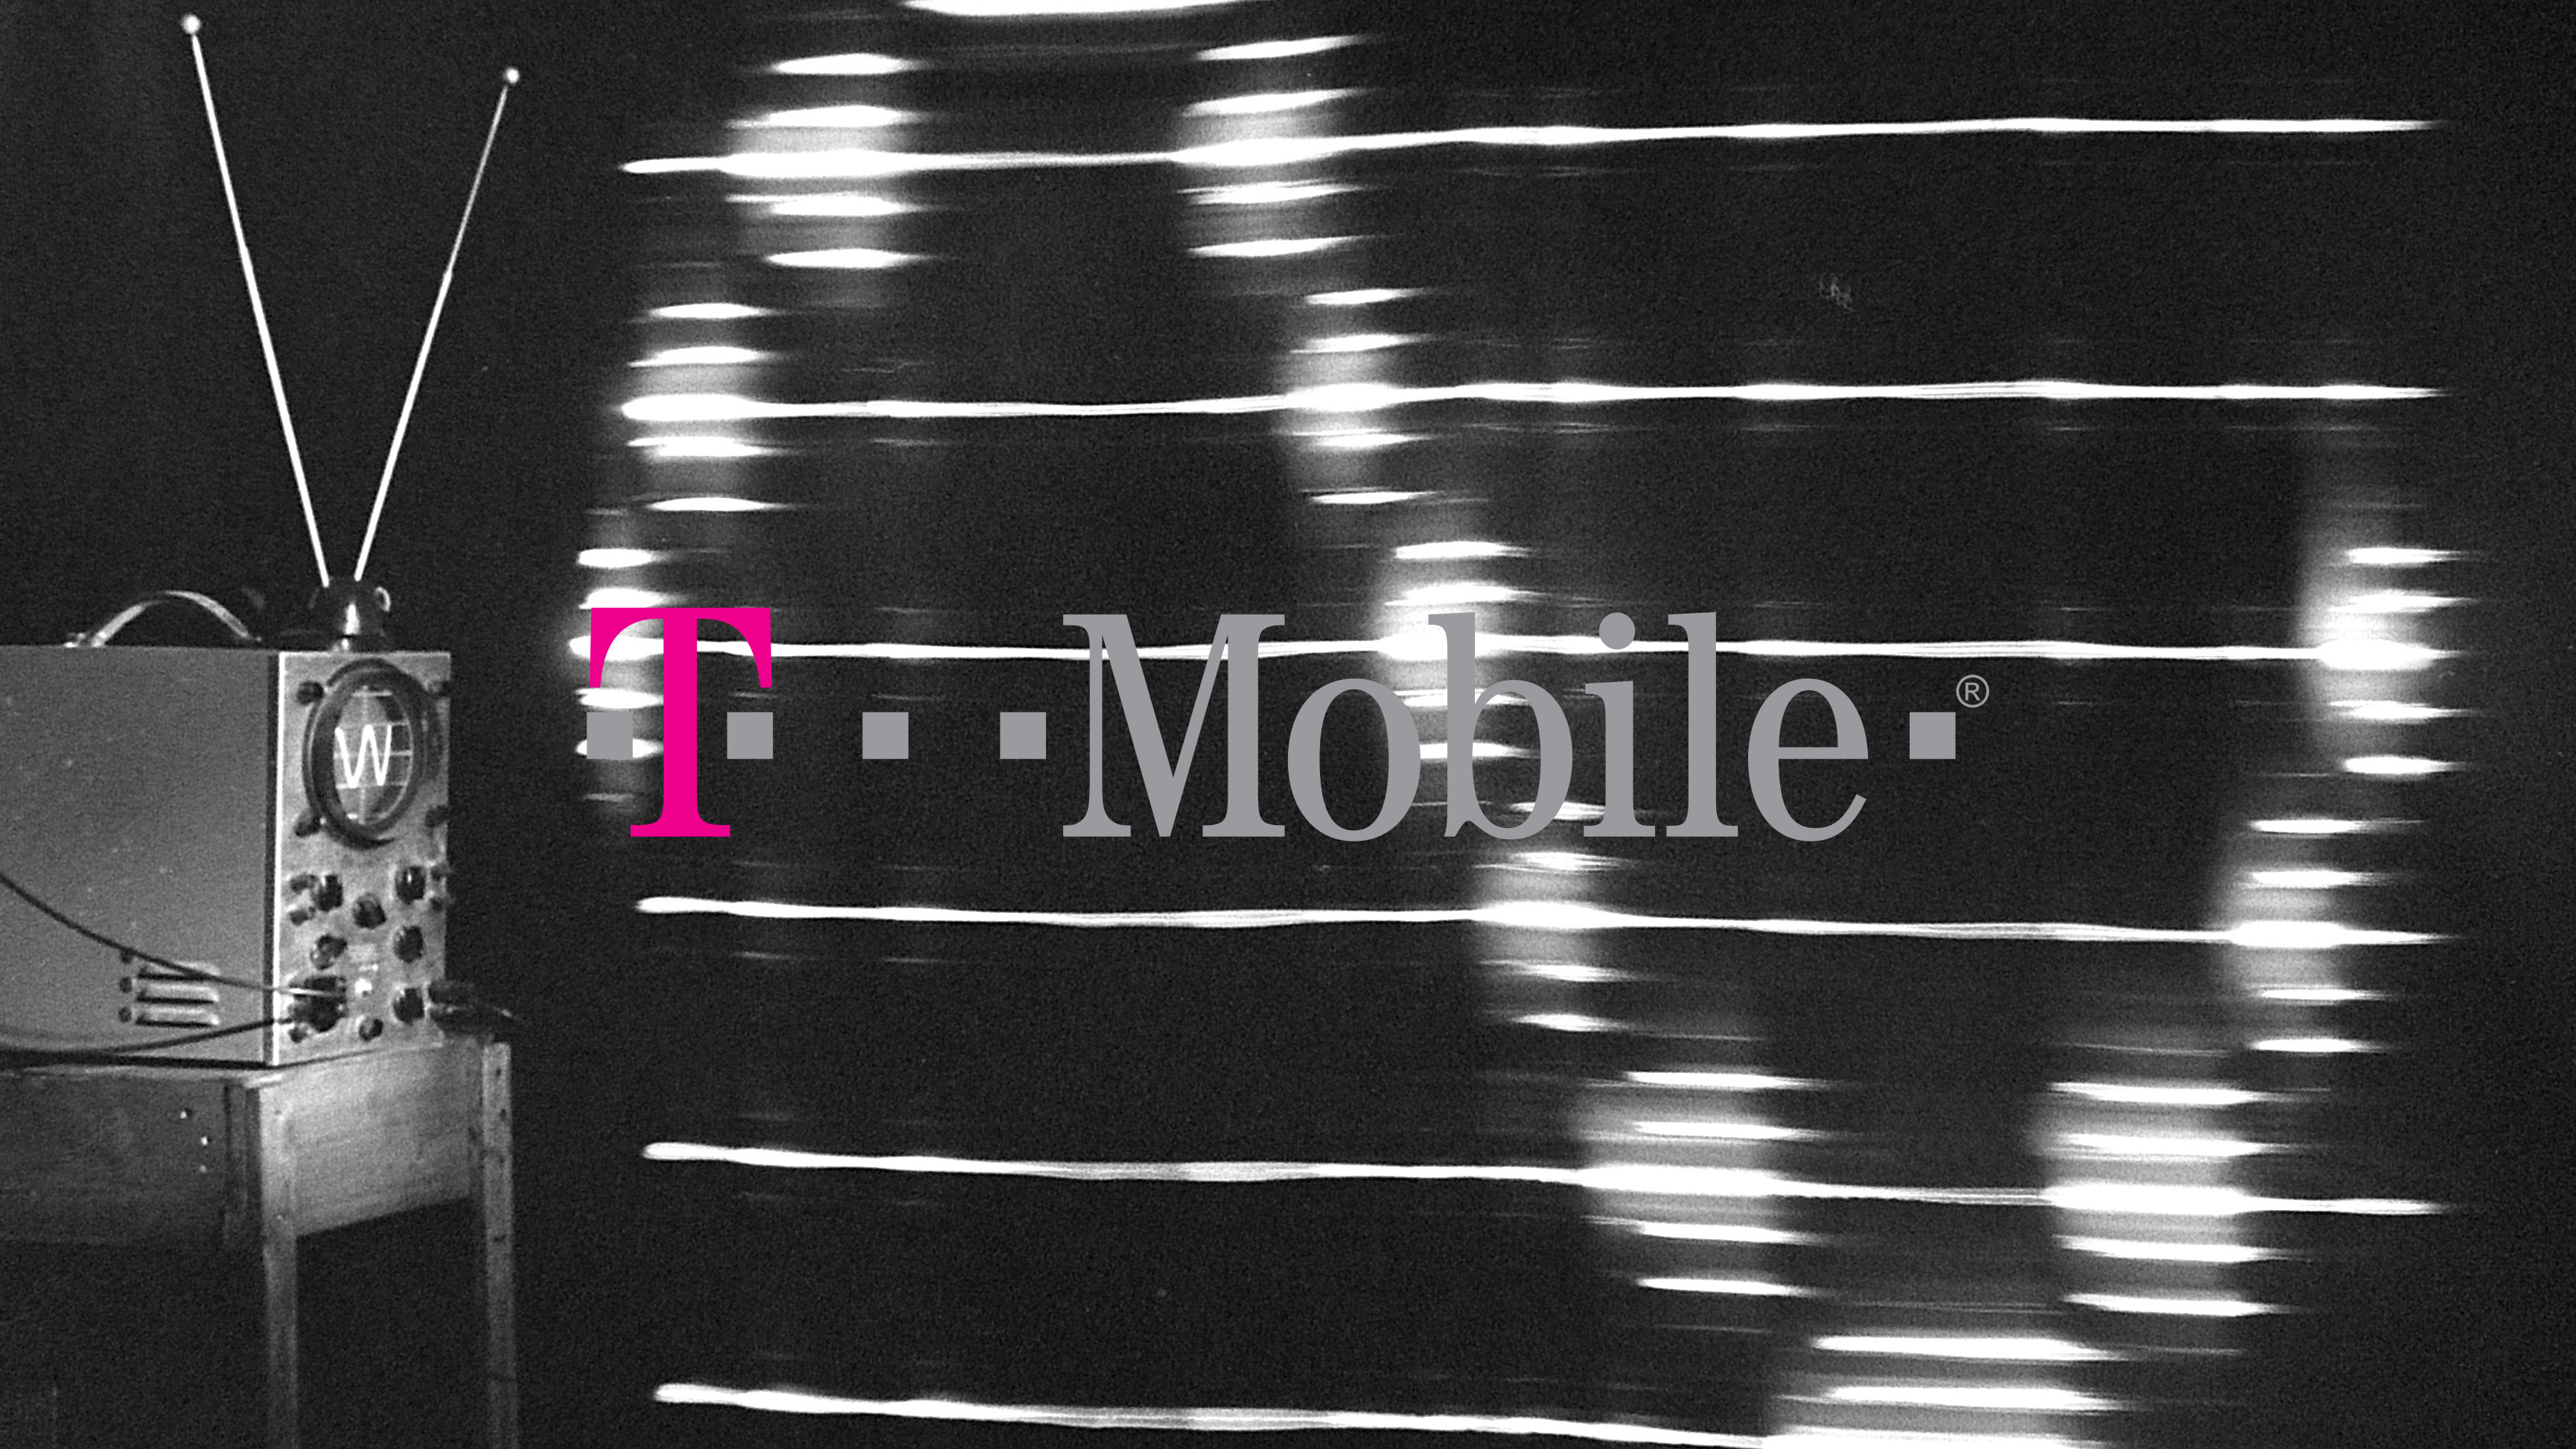 T Mobile Will Limit Lte Roaming In Canada And Mexico To 5gb Starting